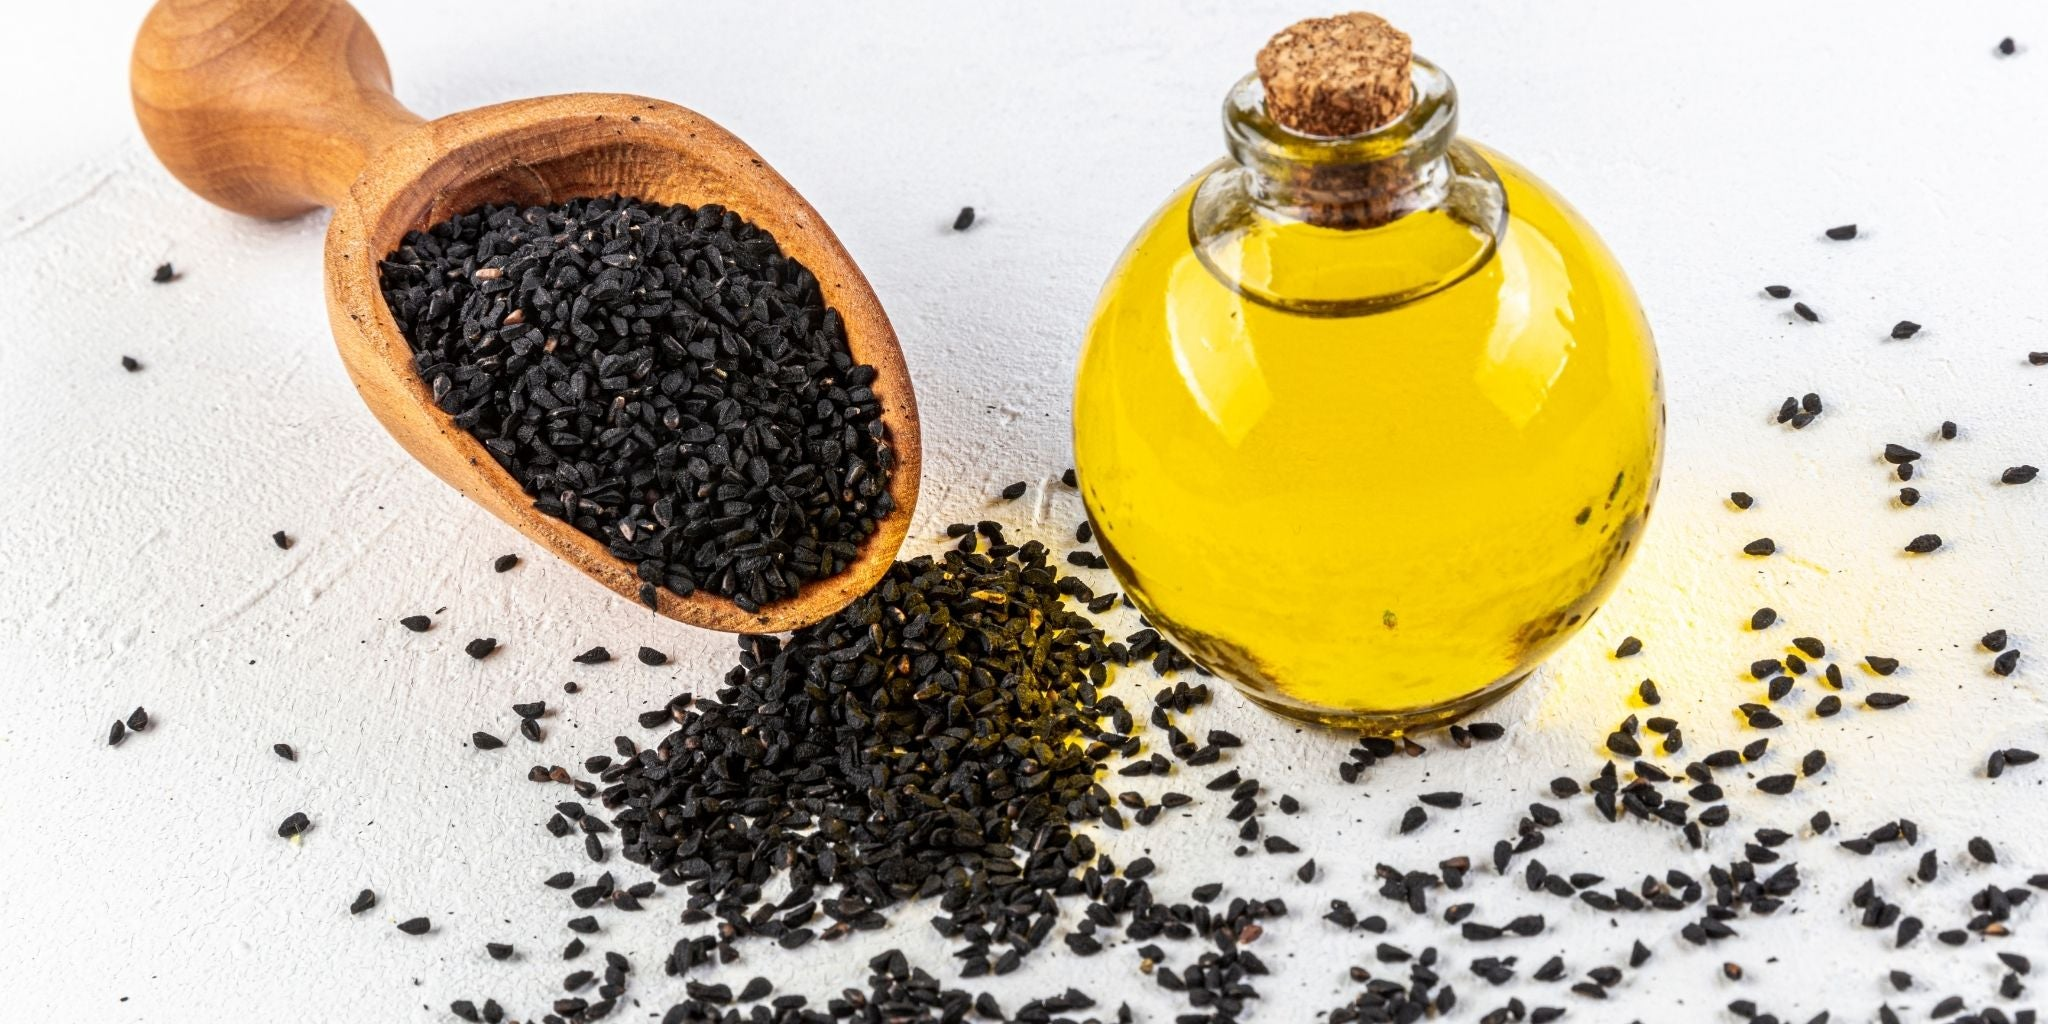 Black Cumin Oil Benefits and where to find it in the UK